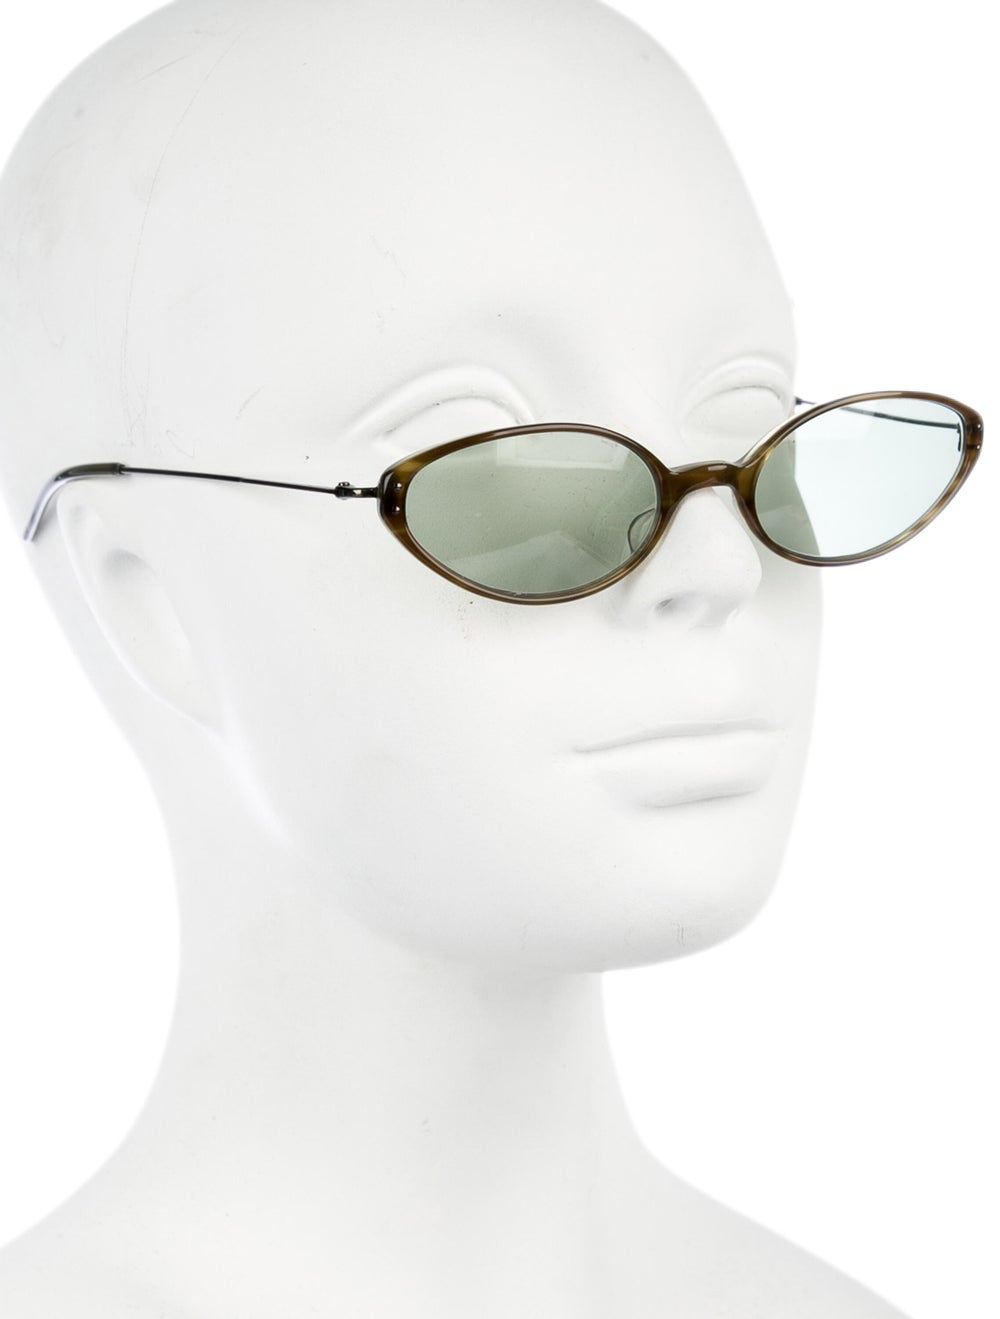 Oliver Peoples Cat-Eye Tinted Sunglasses Green - image 4